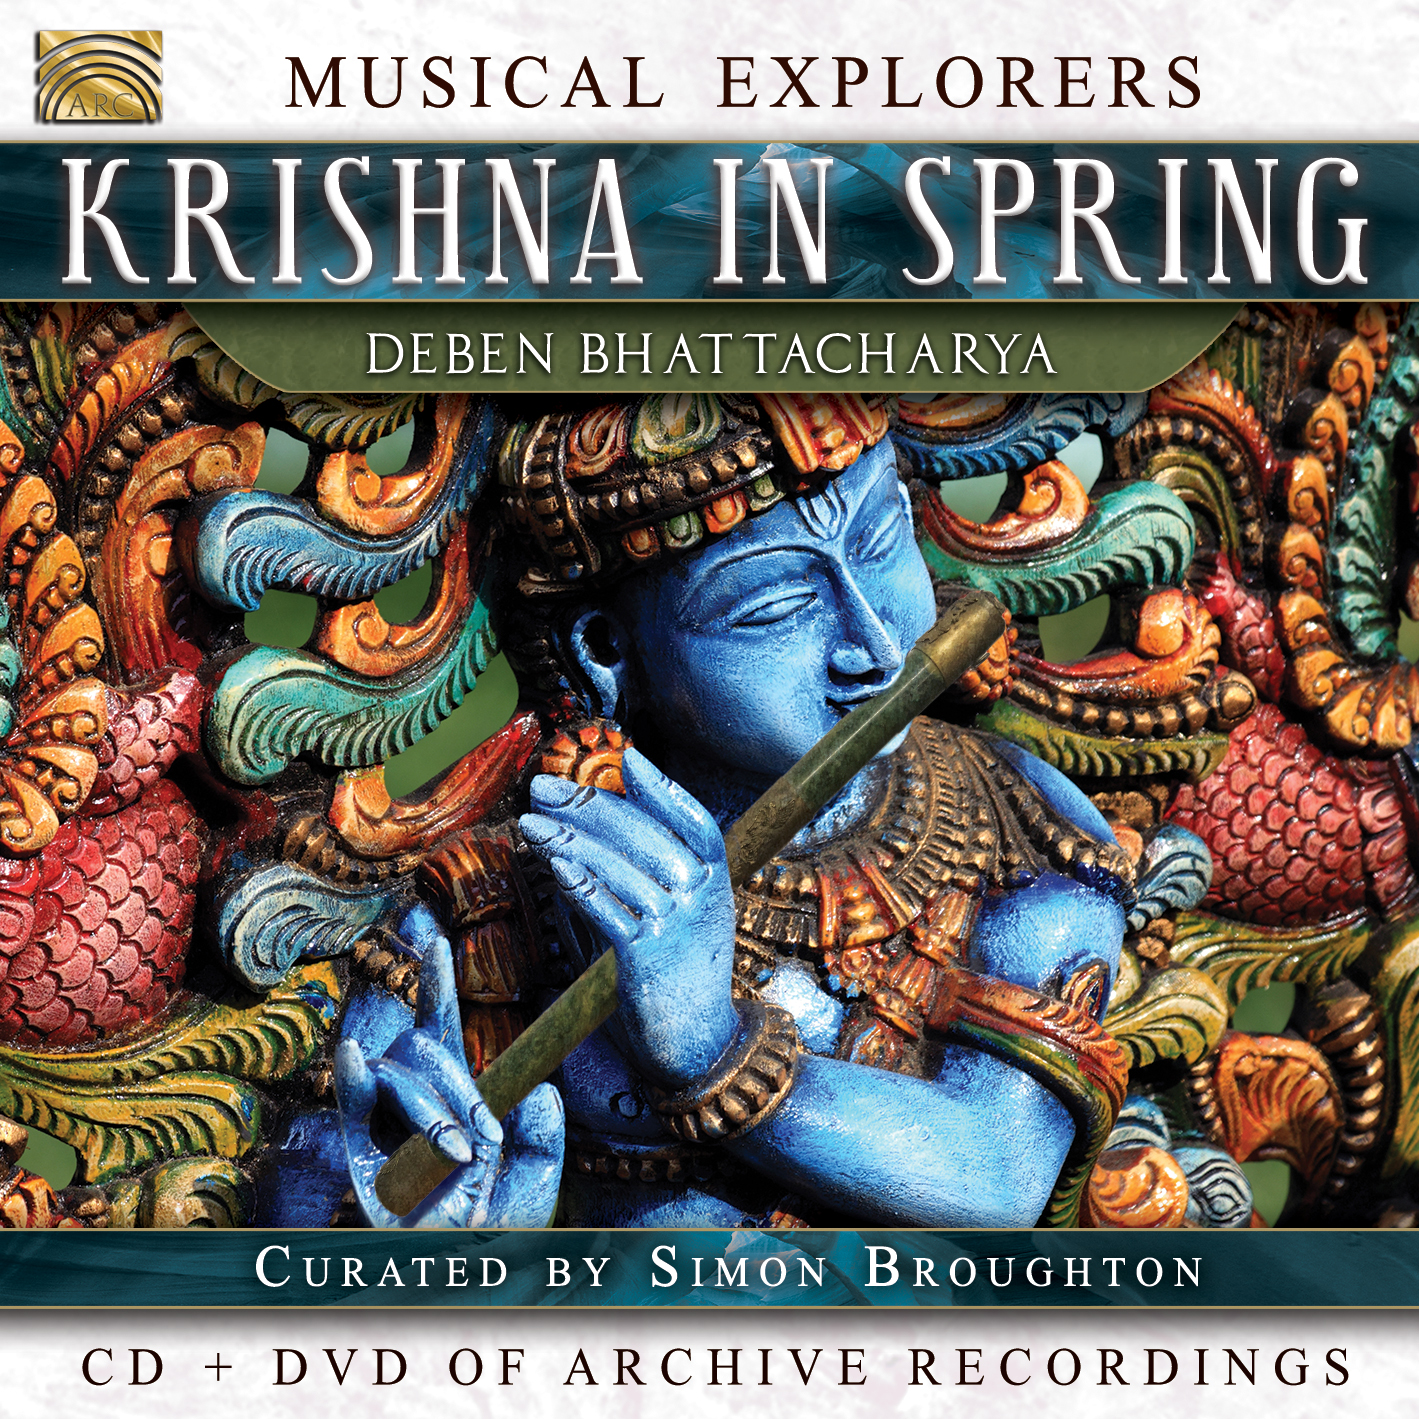 EUCD2745 Musical Explorers Krishna In Spring